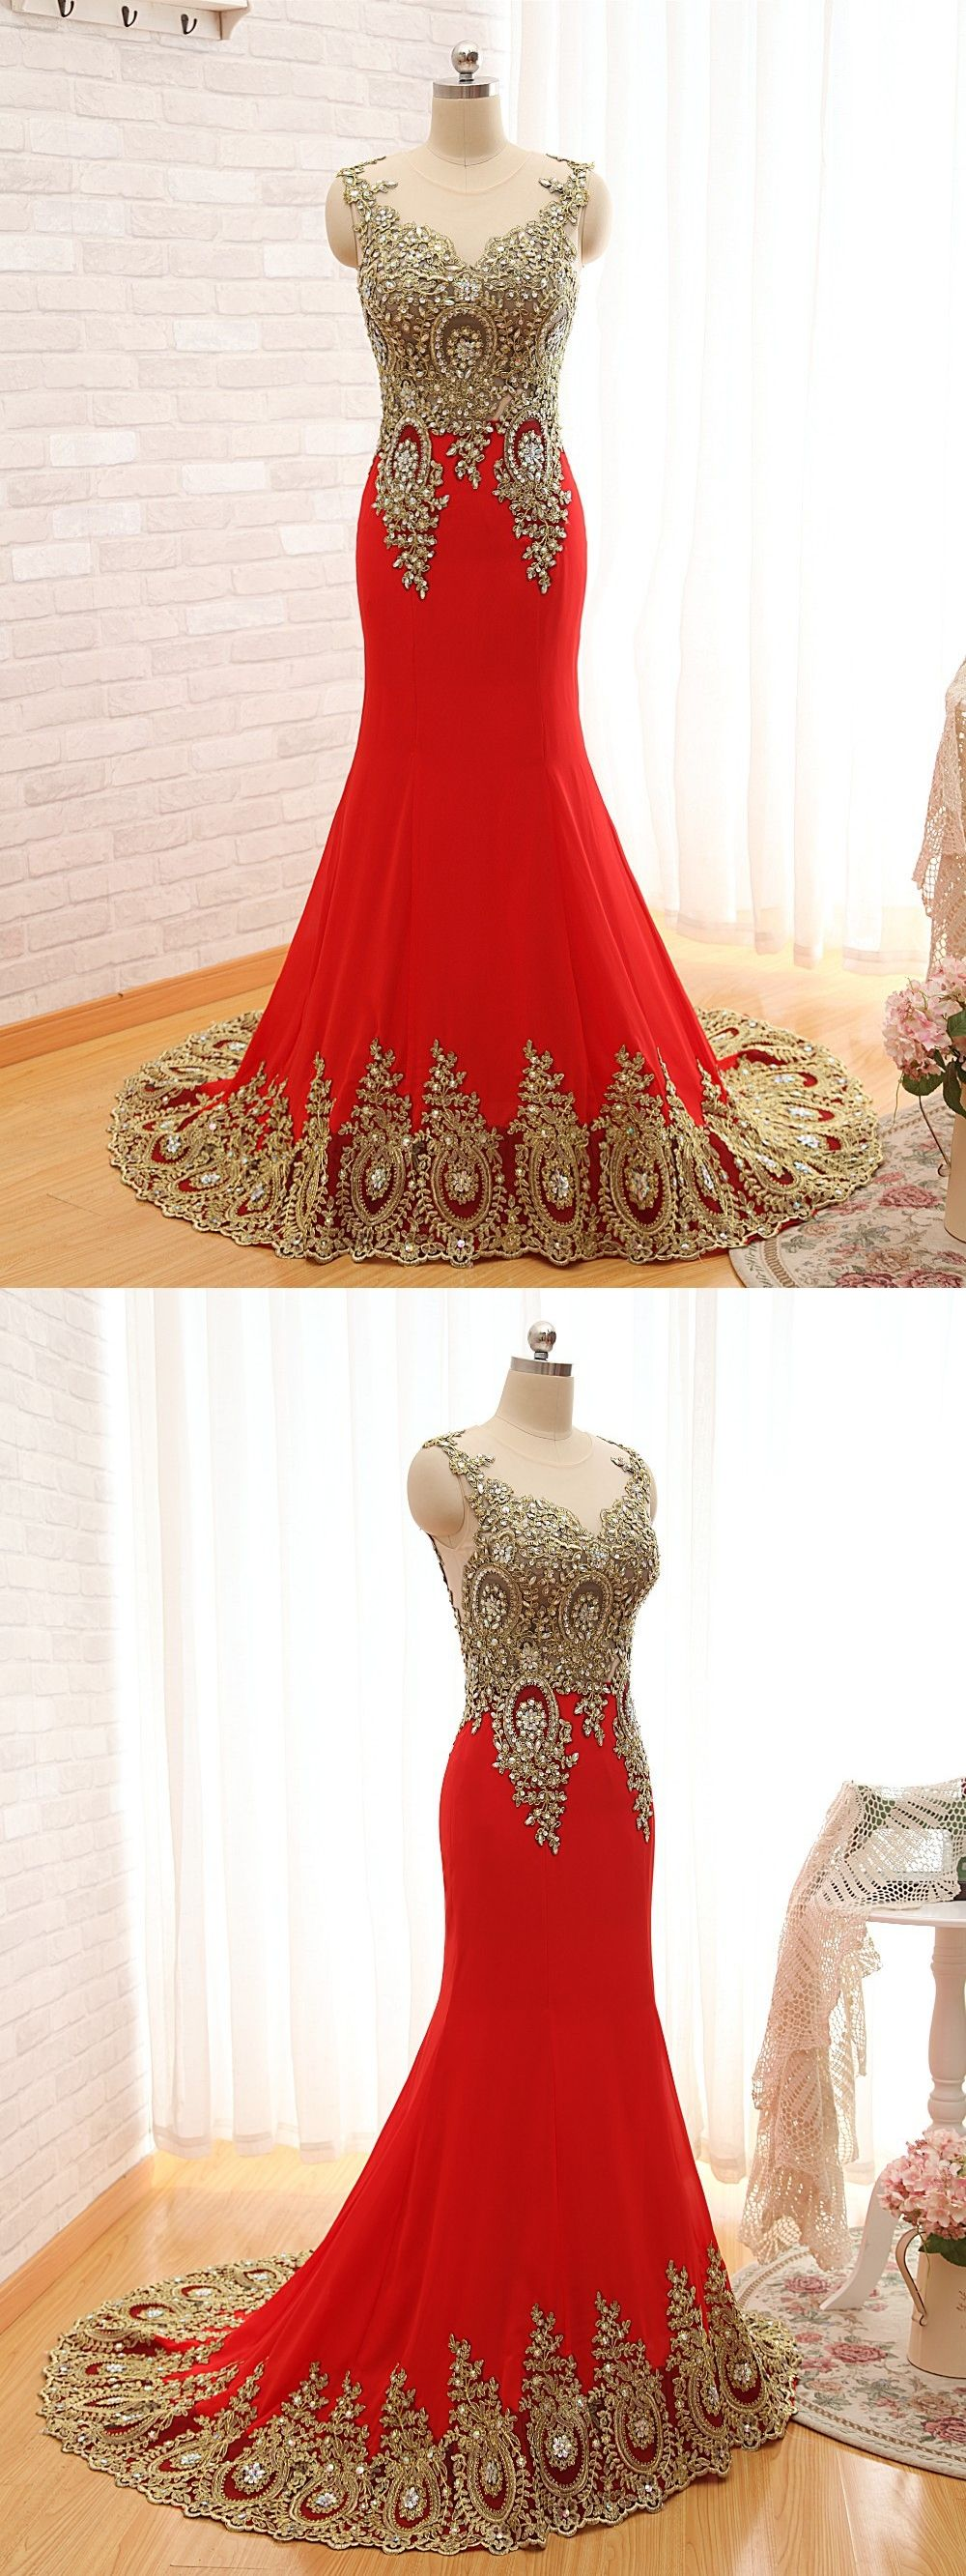 Elegant new design gold embroidery mermaid evening dresses